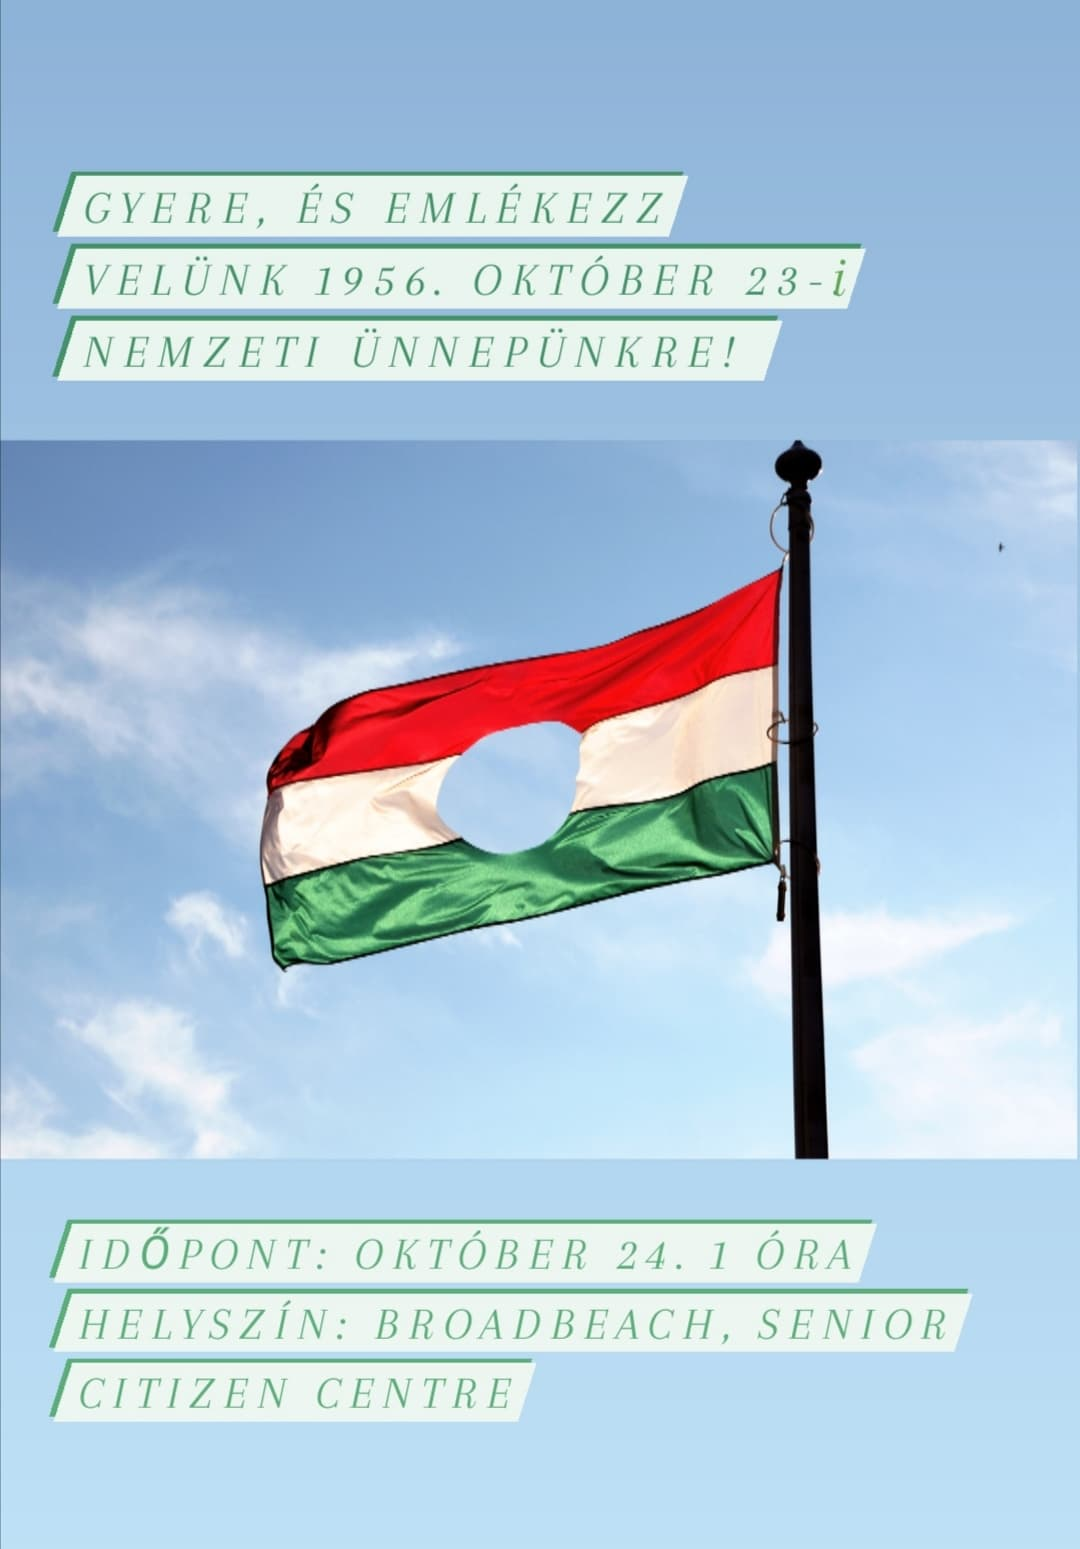 Remembrance day 1956 / HUNGARY